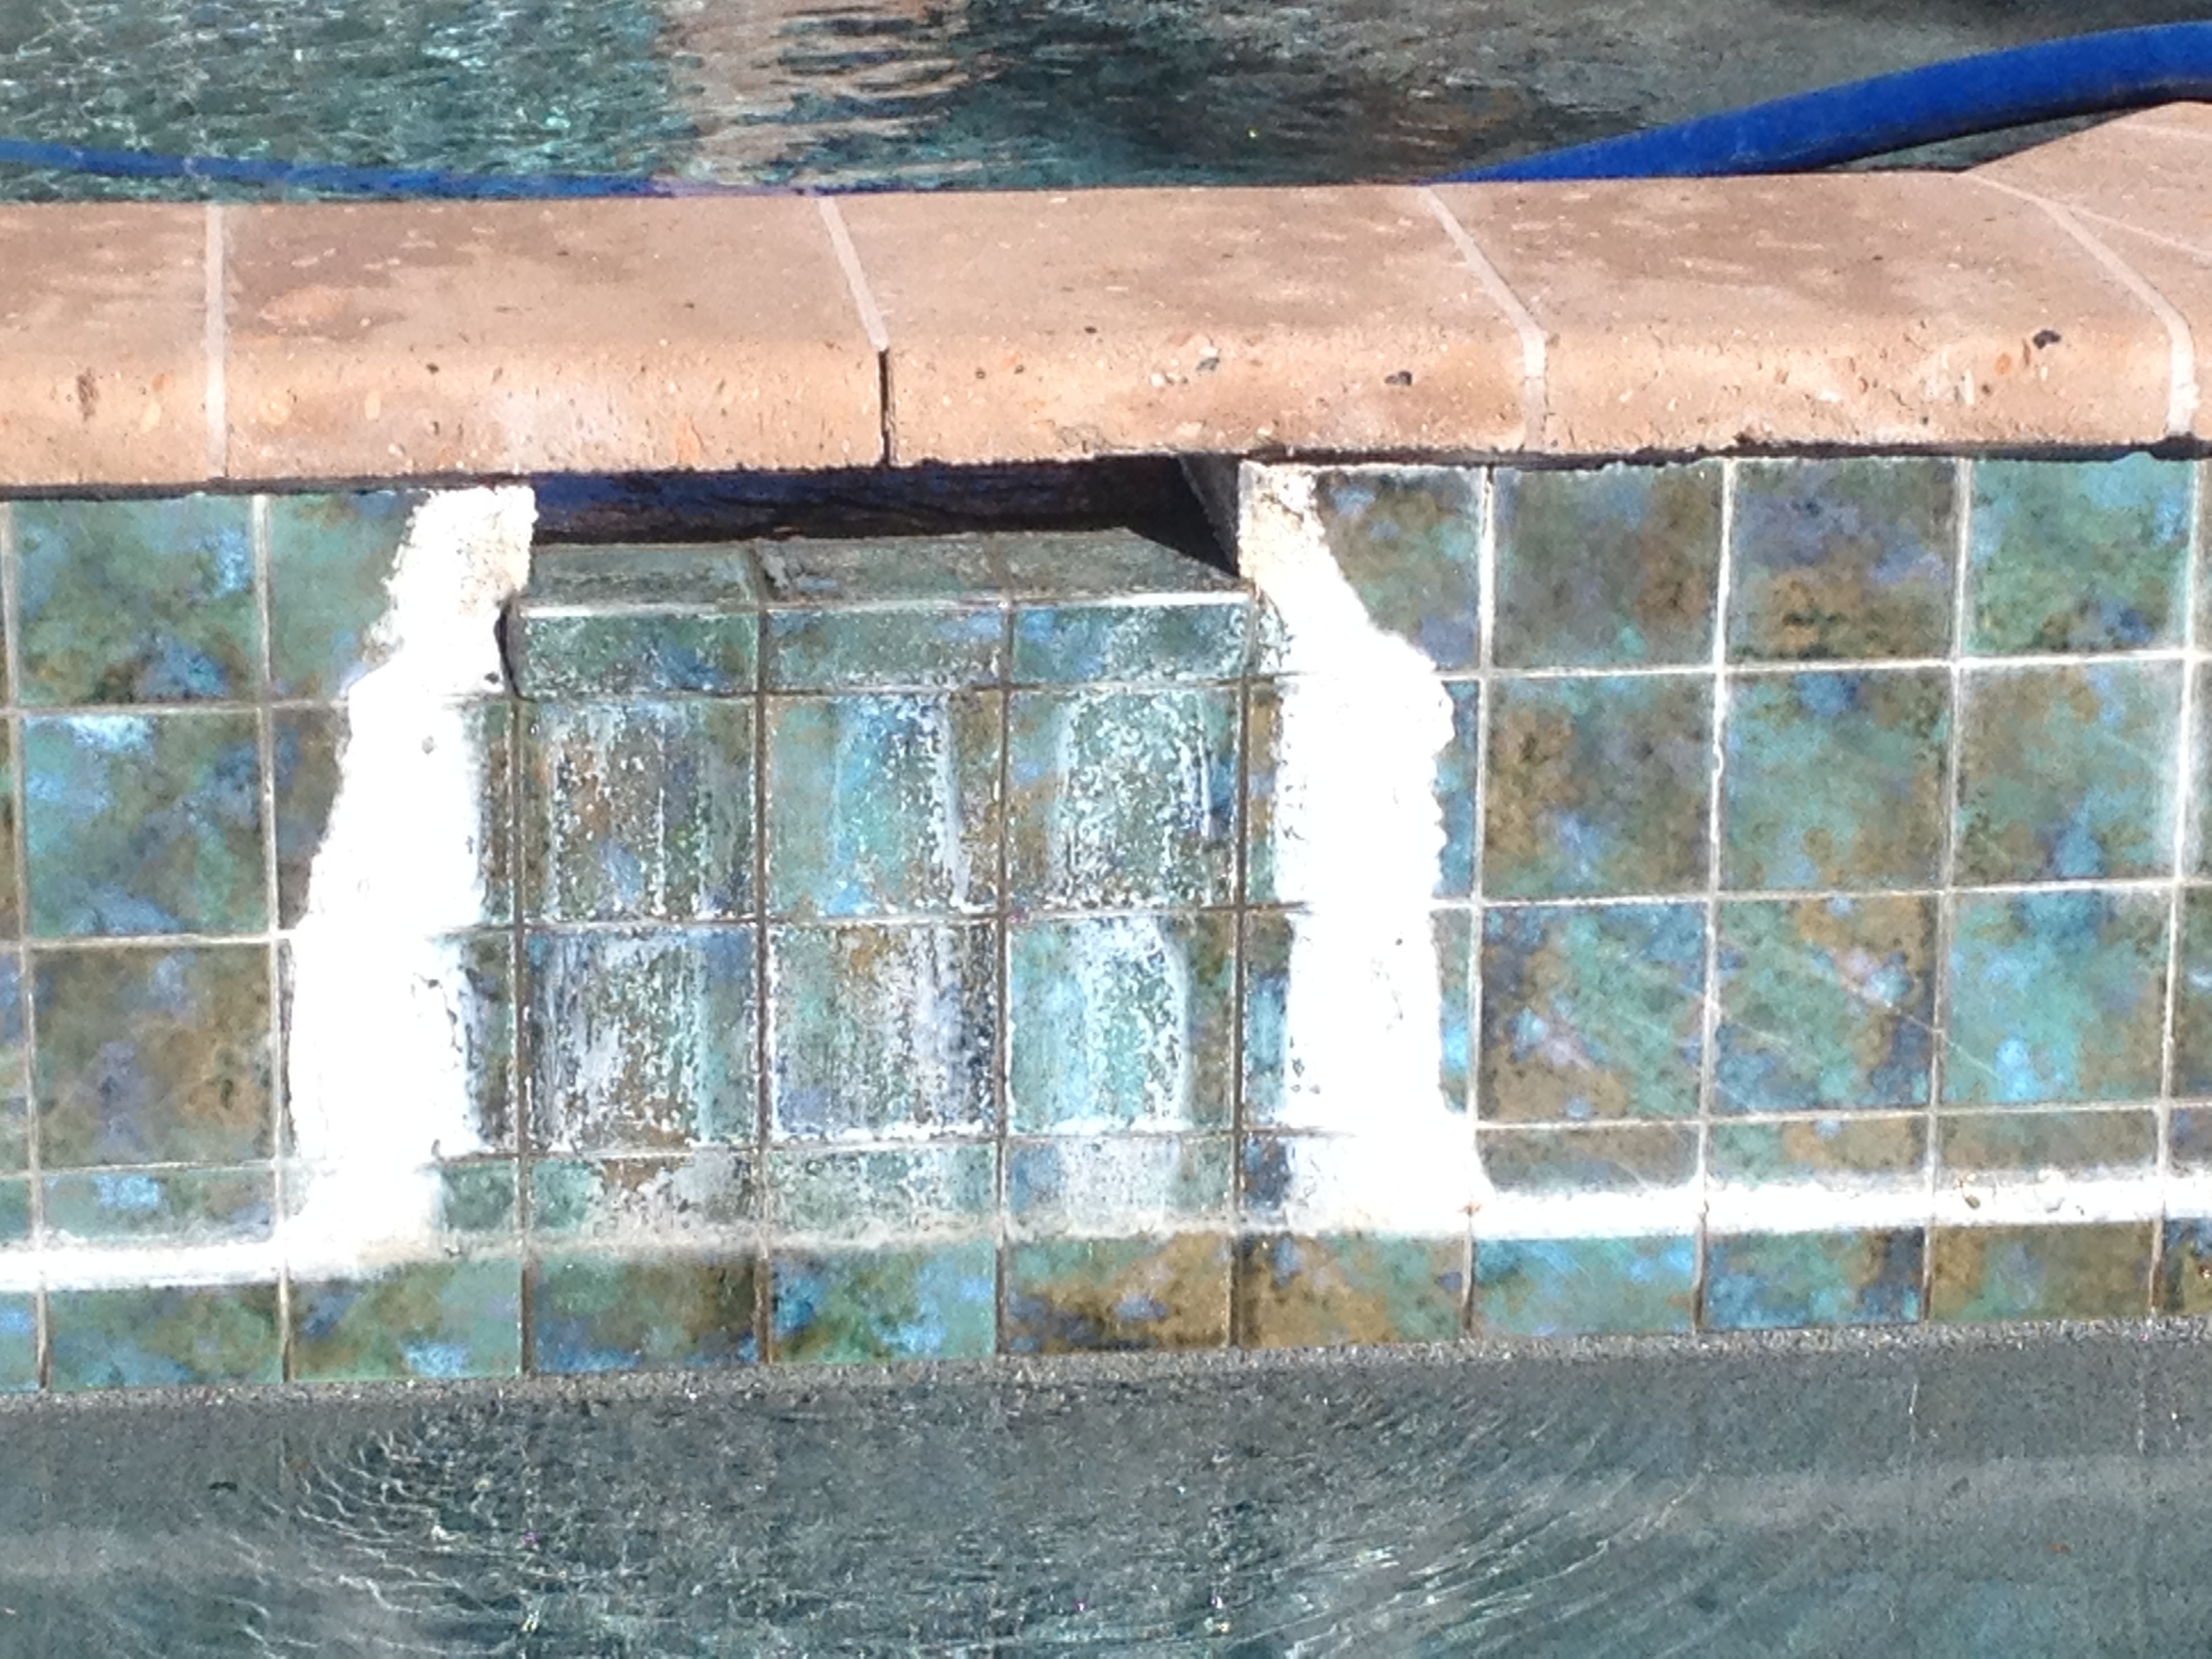 Docs Pool Tile Cleaning in Tucson